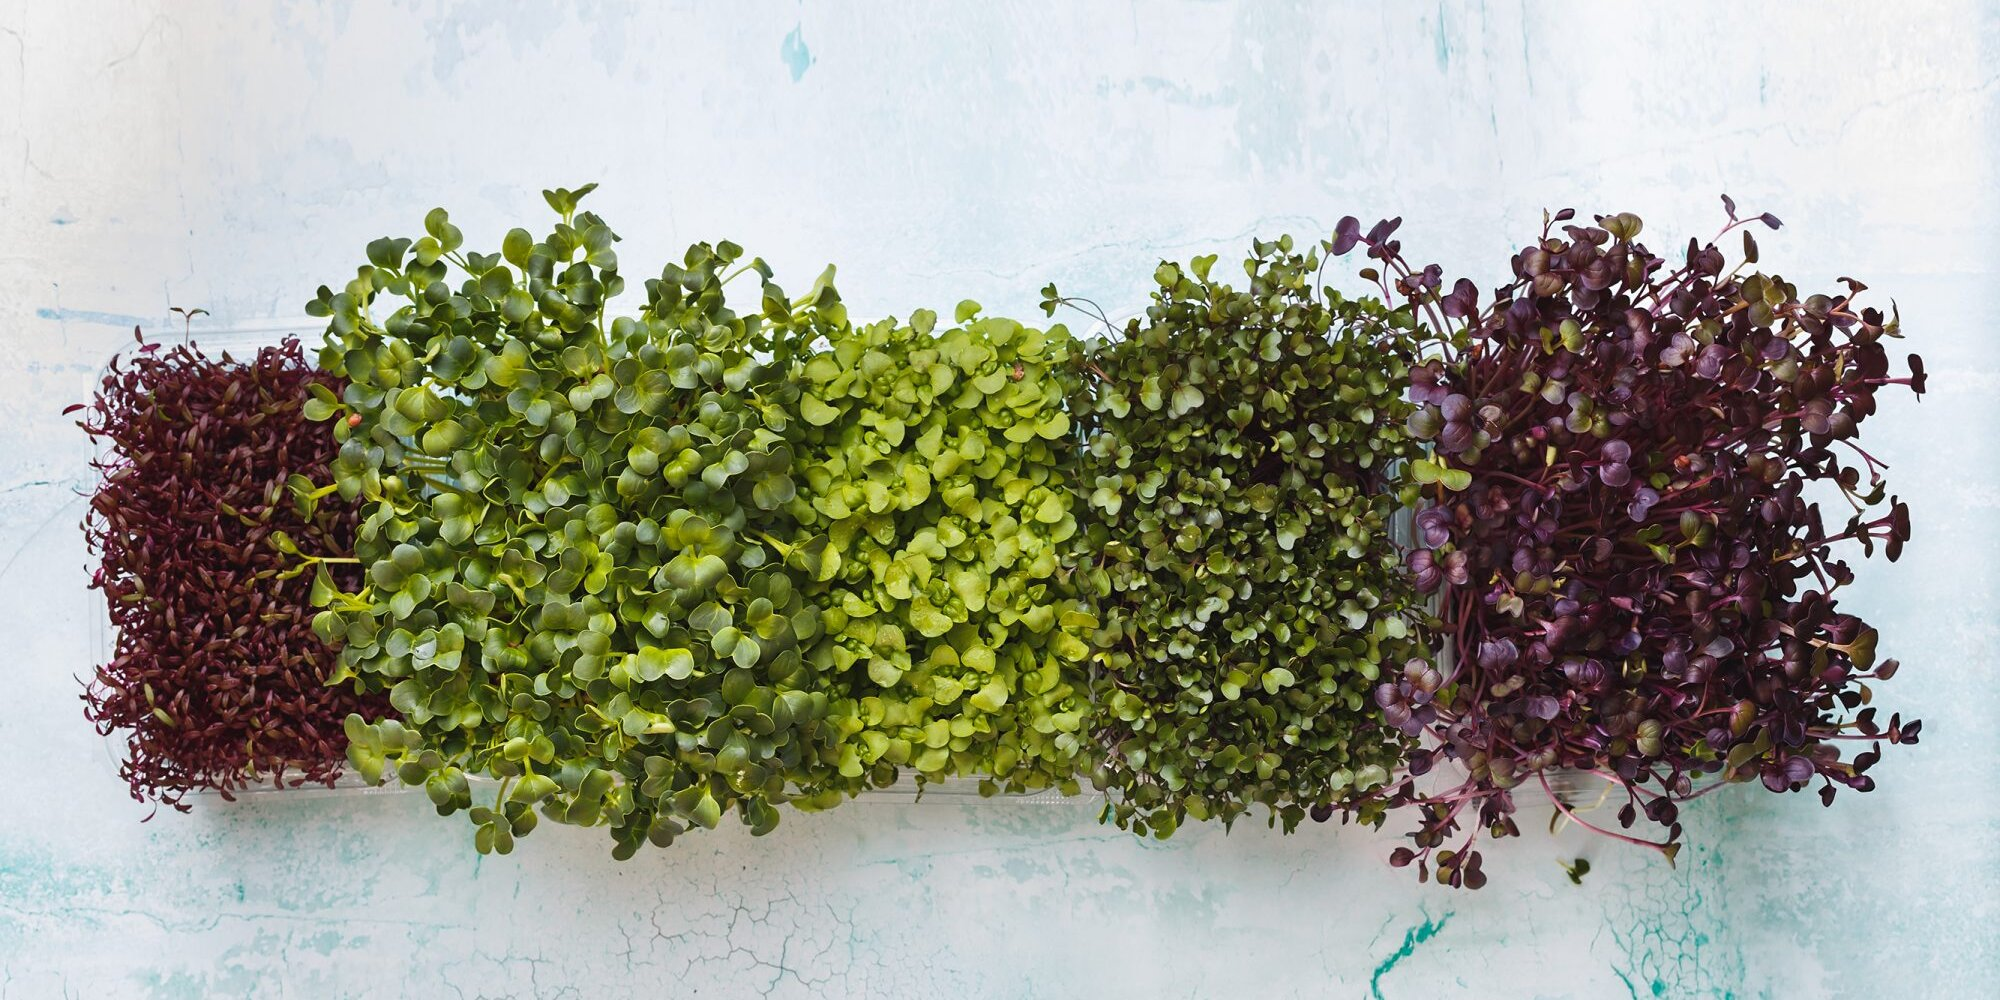 Vertical Farming Is a Space-Saving Way to Grow Fruits and Vegetables at Home—Here's How